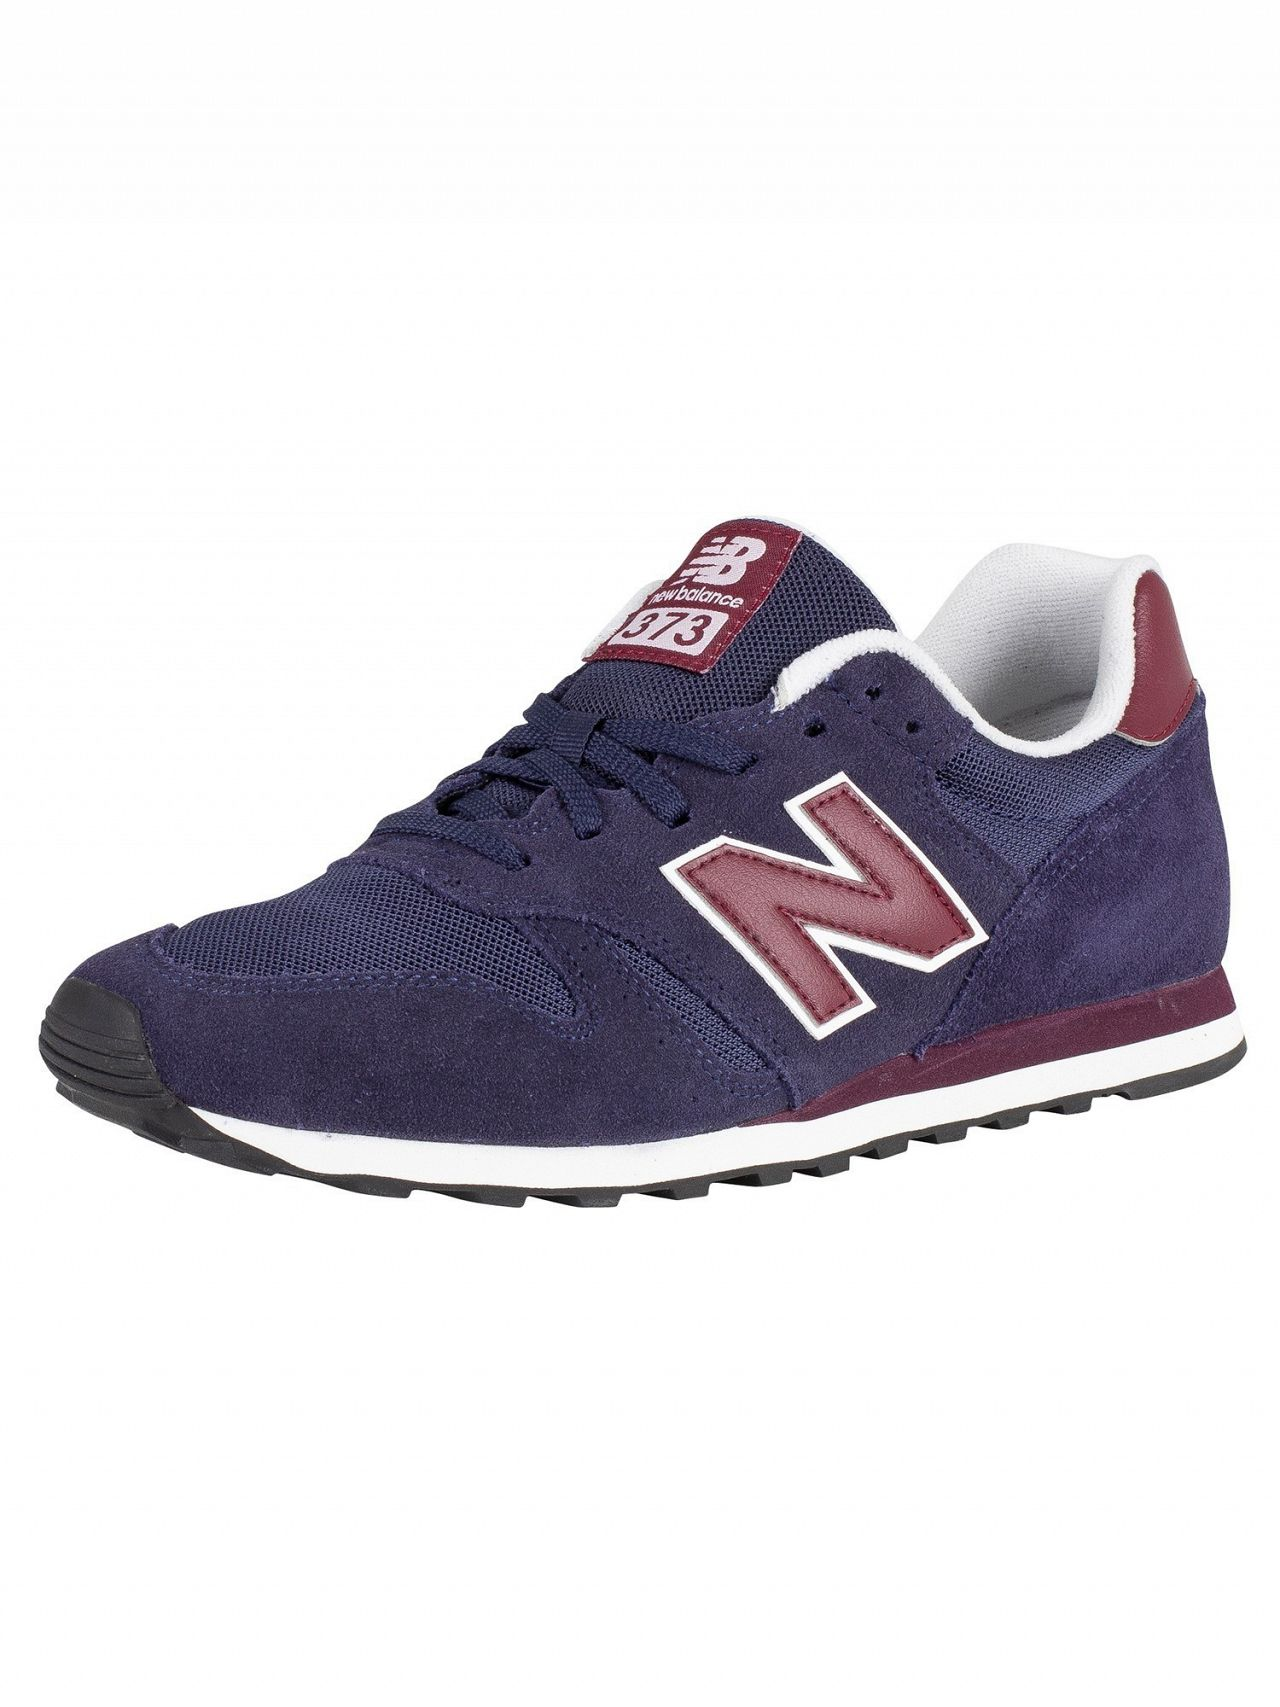 on sale 251b7 621a7 New Balance Navy Burgundy 373 Suede Trainers